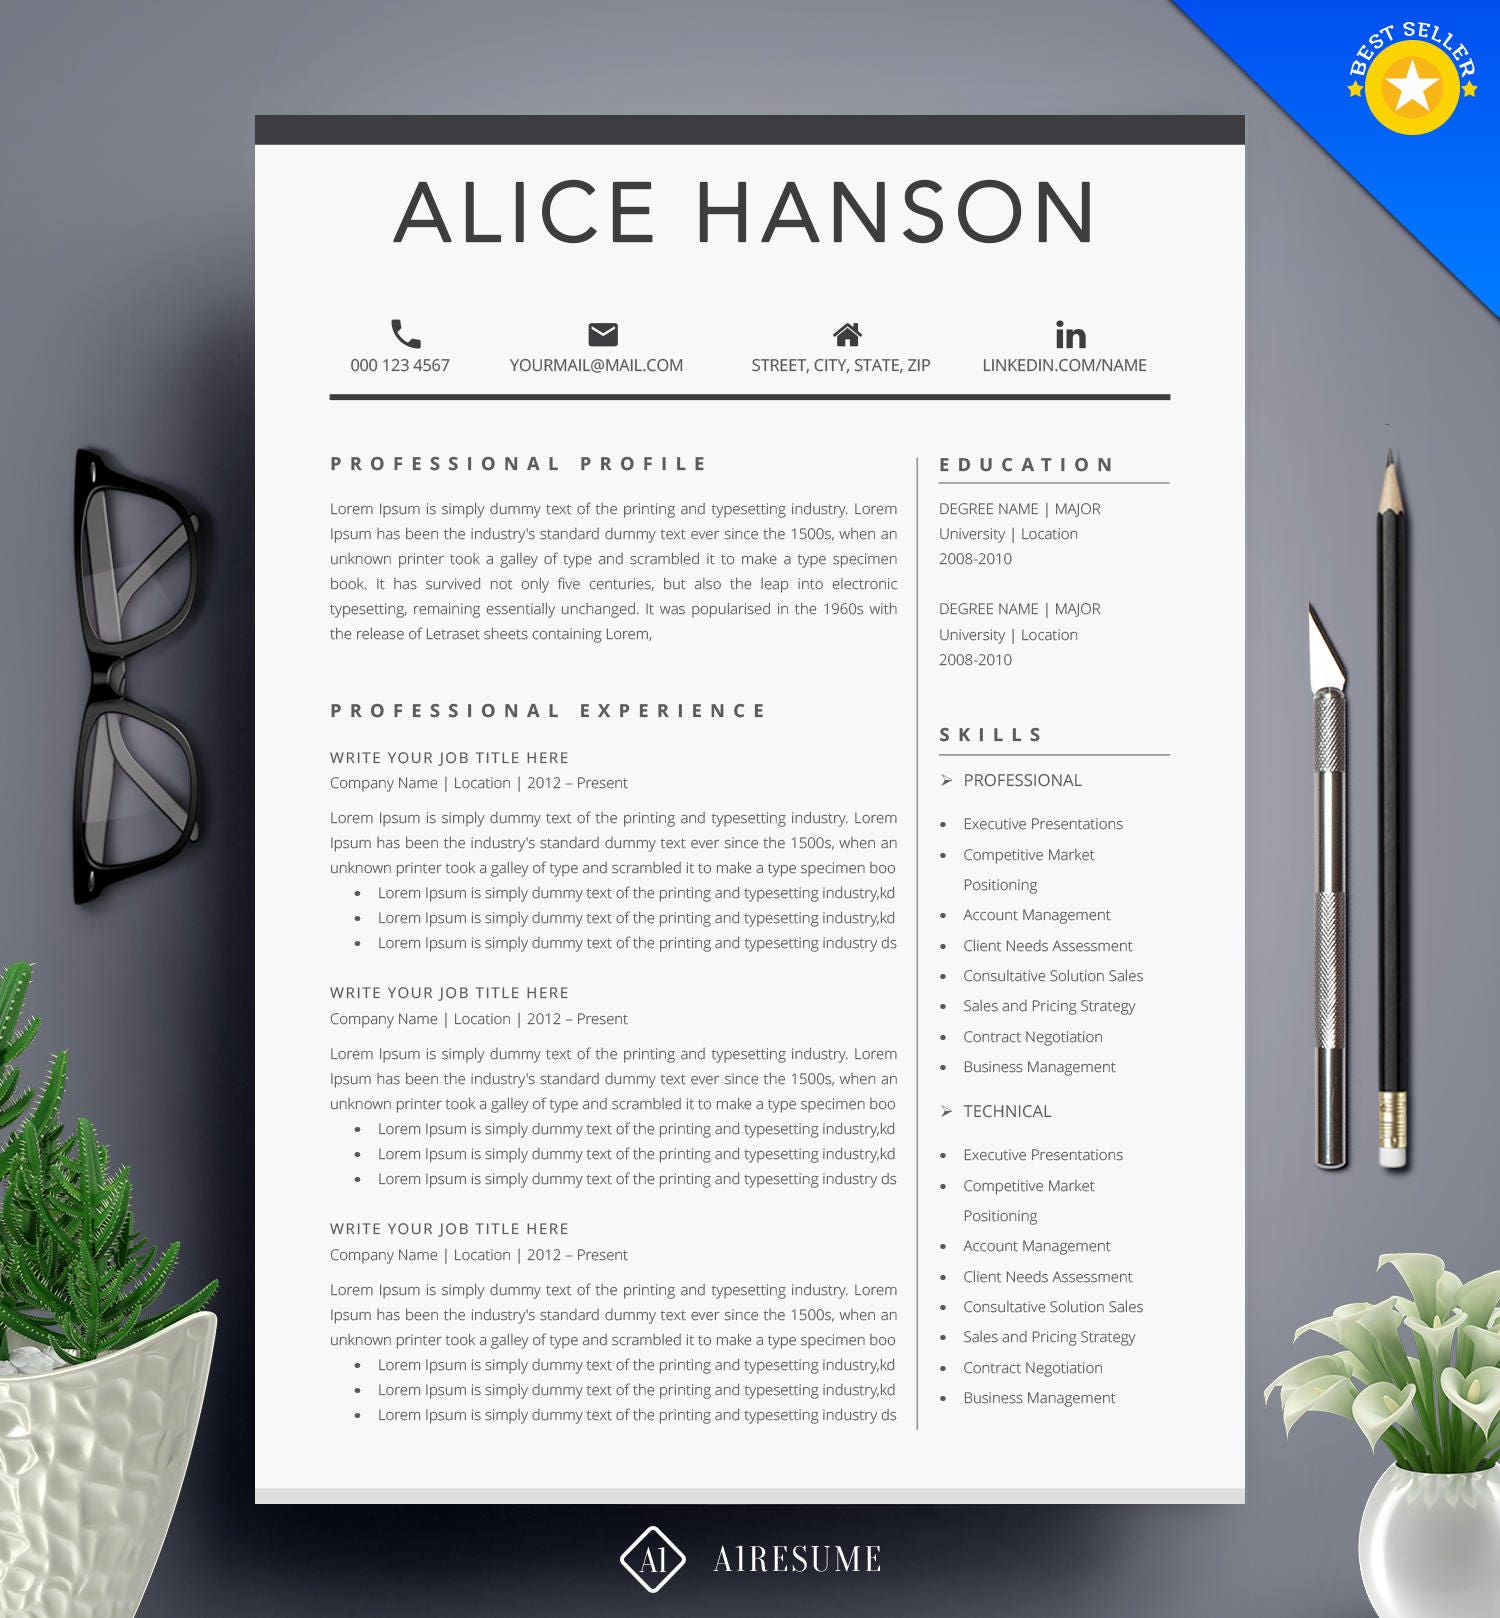 Resume Template / CV Template + Cover Letter for MS Word | Professional and Creative Resume Design | Teacher Resume | Instant Download